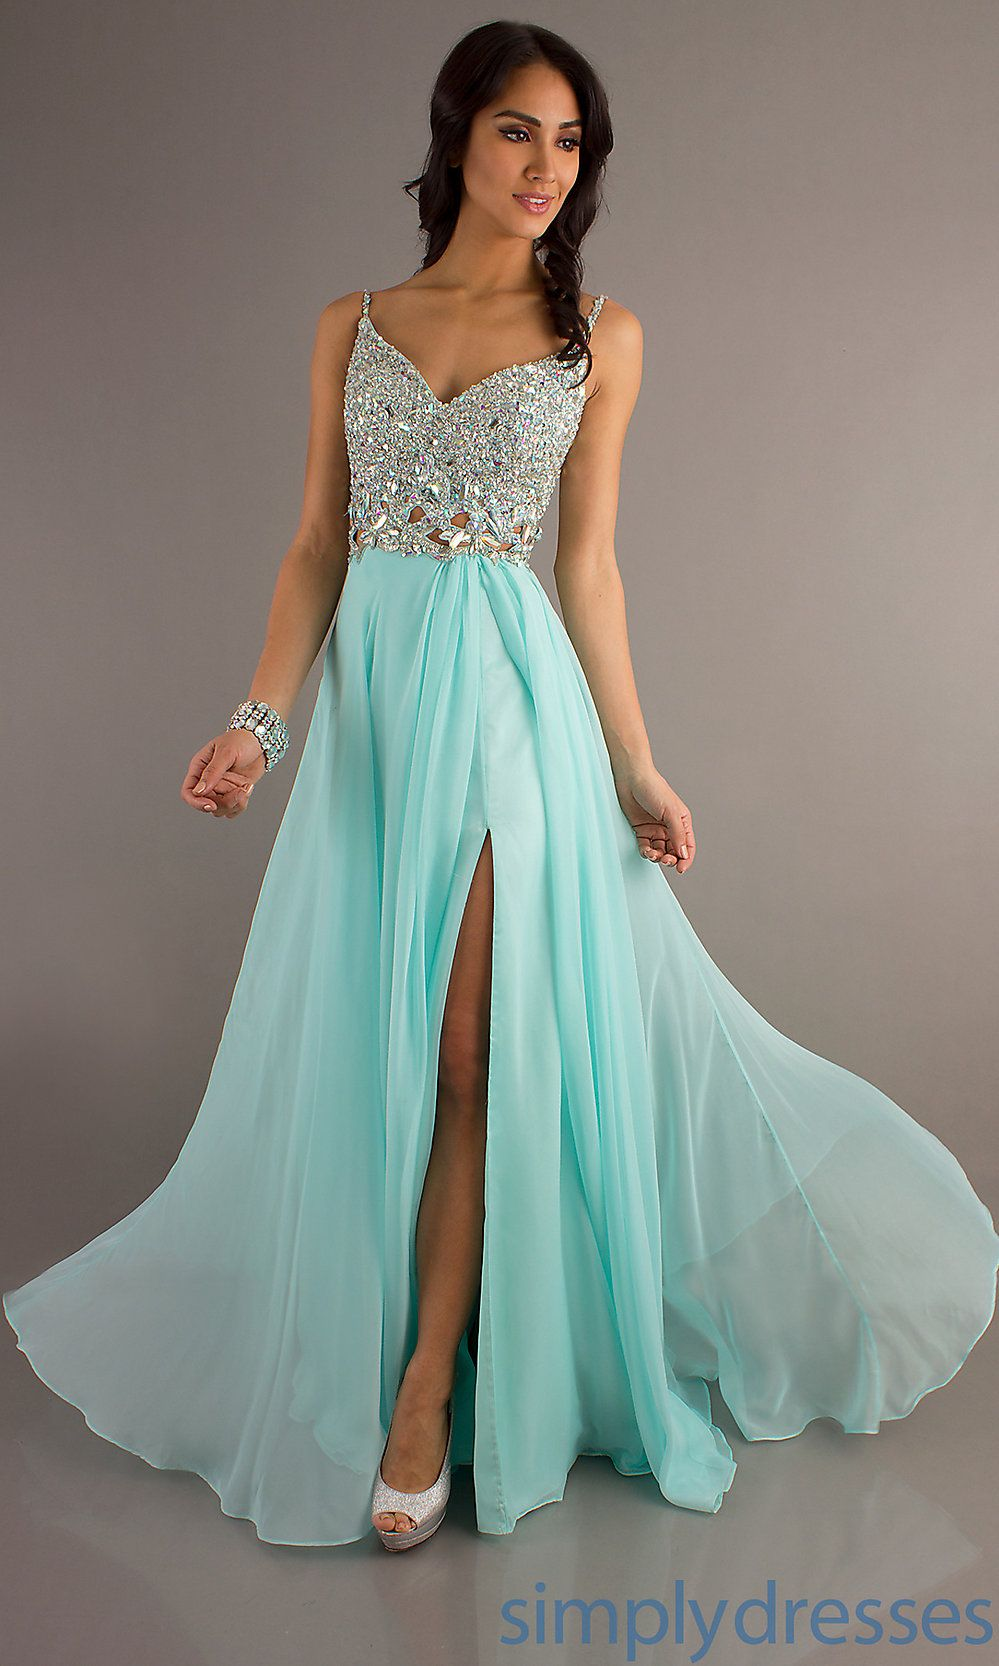 Google Image Result for http://img1.simplydresses.com/_img ...